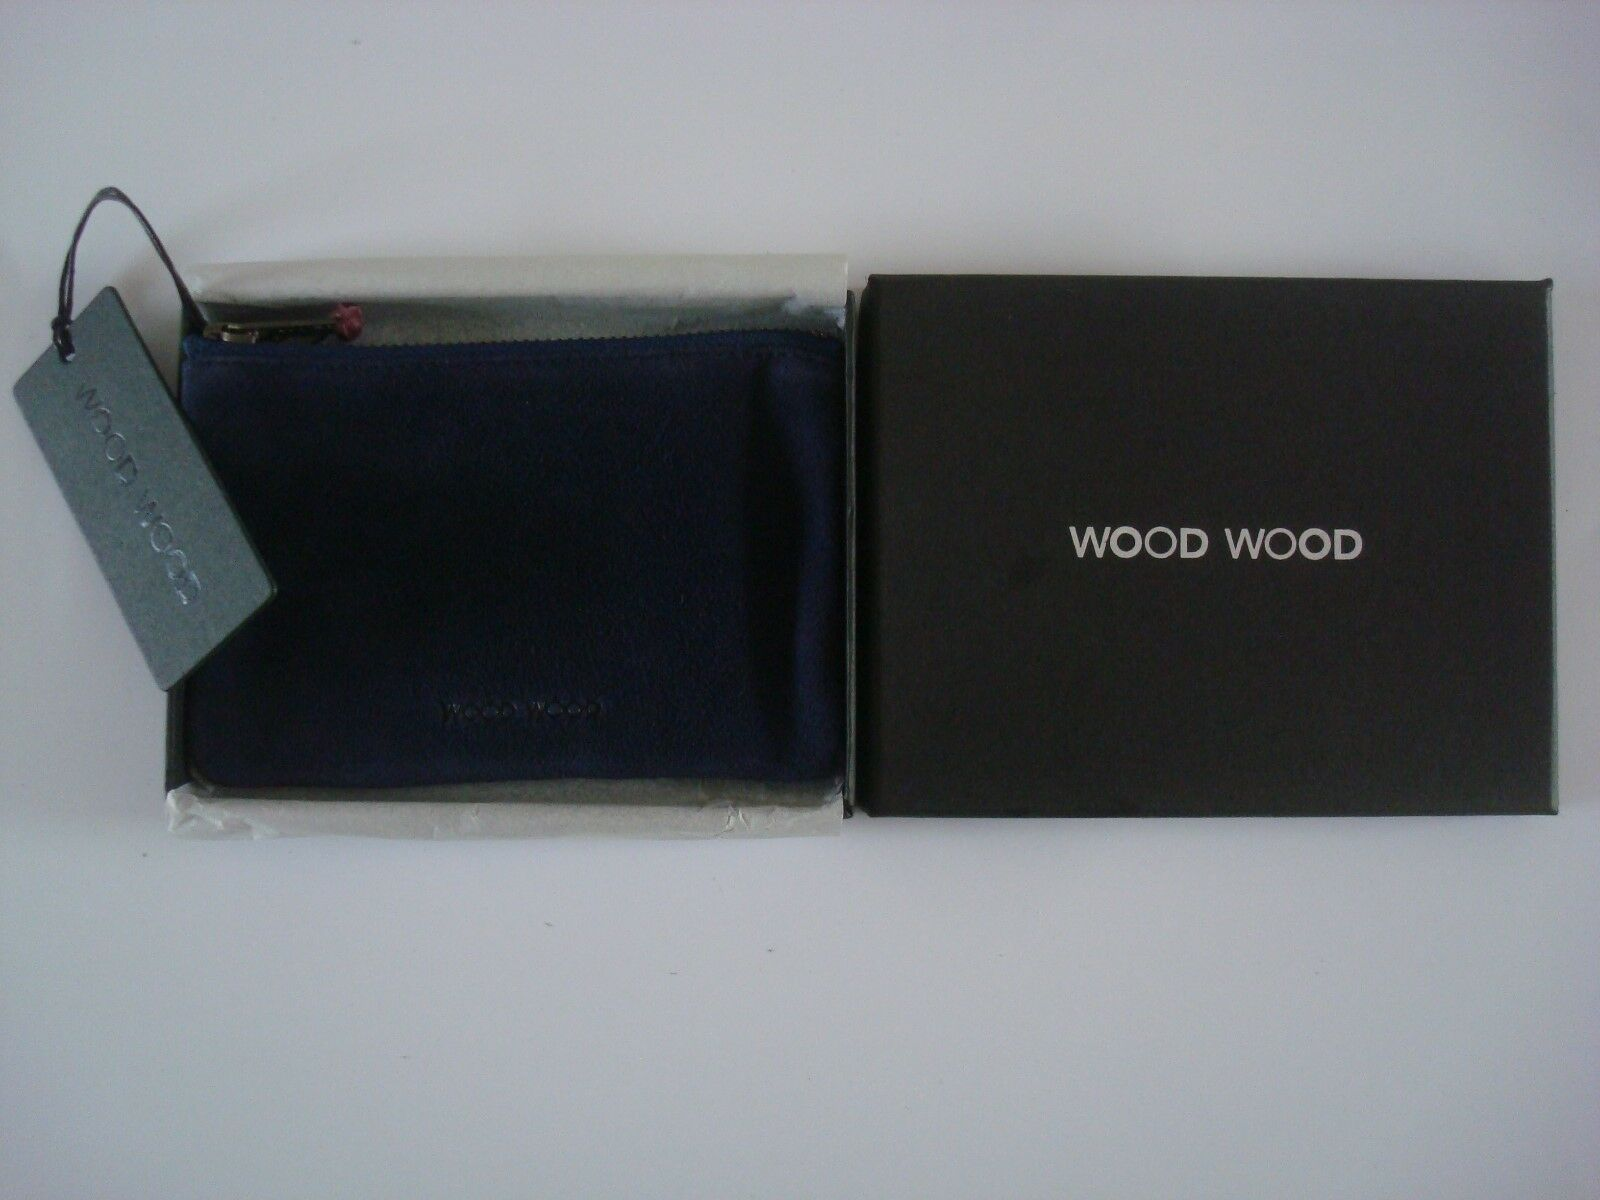 WOOD WOOD Soft Suede Leather Zip Wallet - Two Colour - RRP - Gorgeous - BNWT